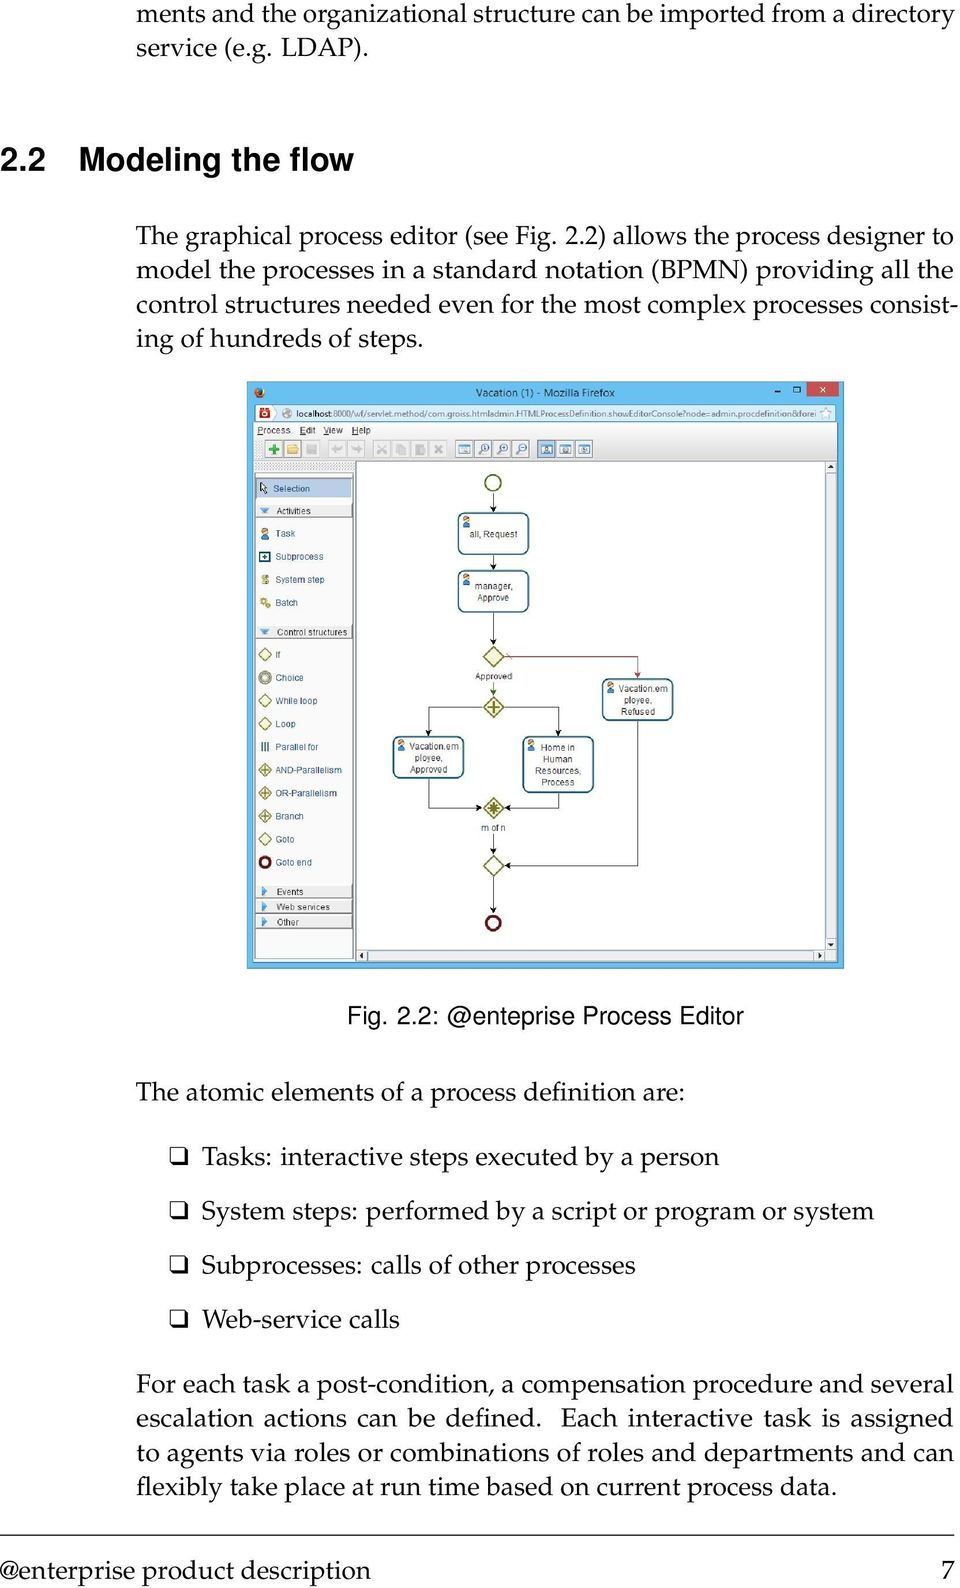 2) allows the process designer to model the processes in a standard notation (BPMN) providing all the control structures needed even for the most complex processes consisting of hundreds of steps.